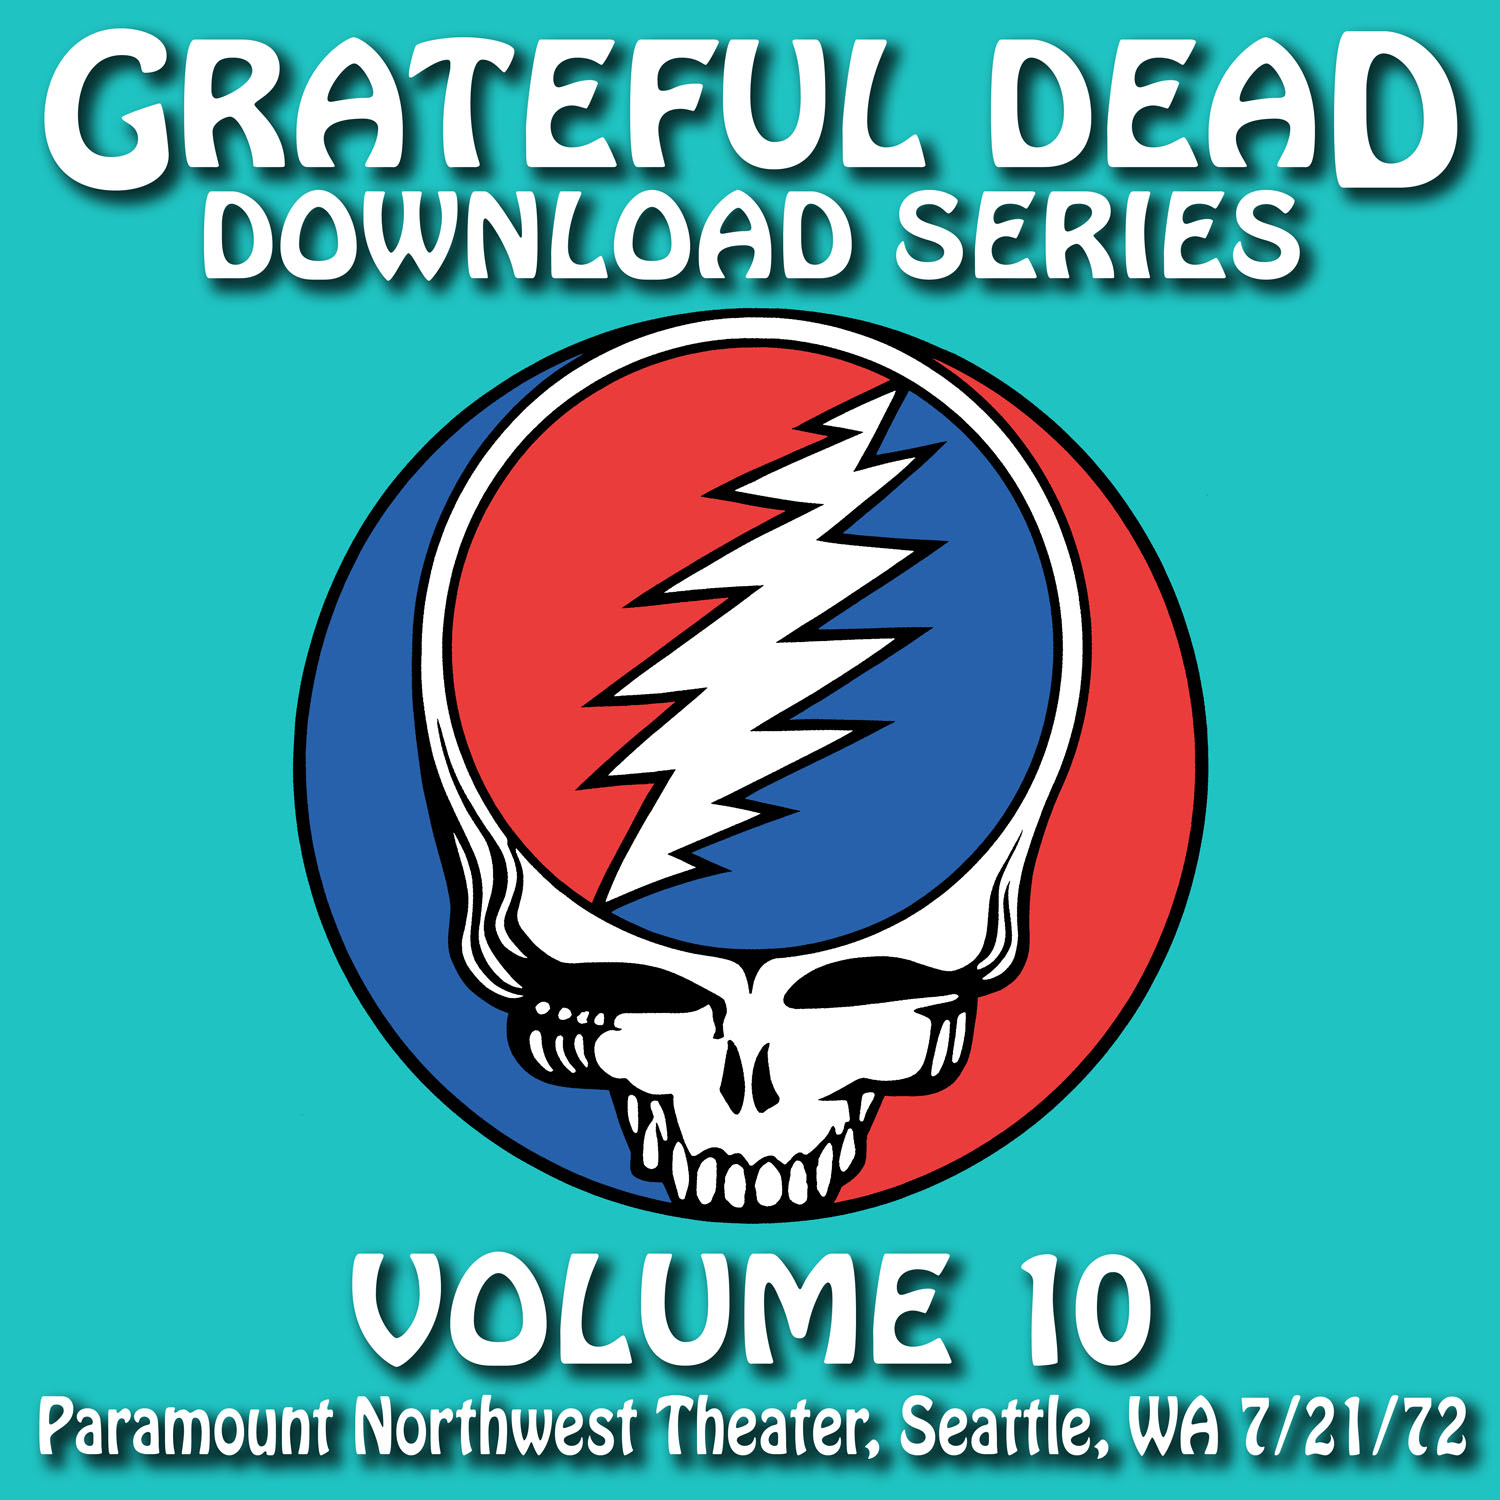 Grateful Dead Download Series 10 album cover artwork